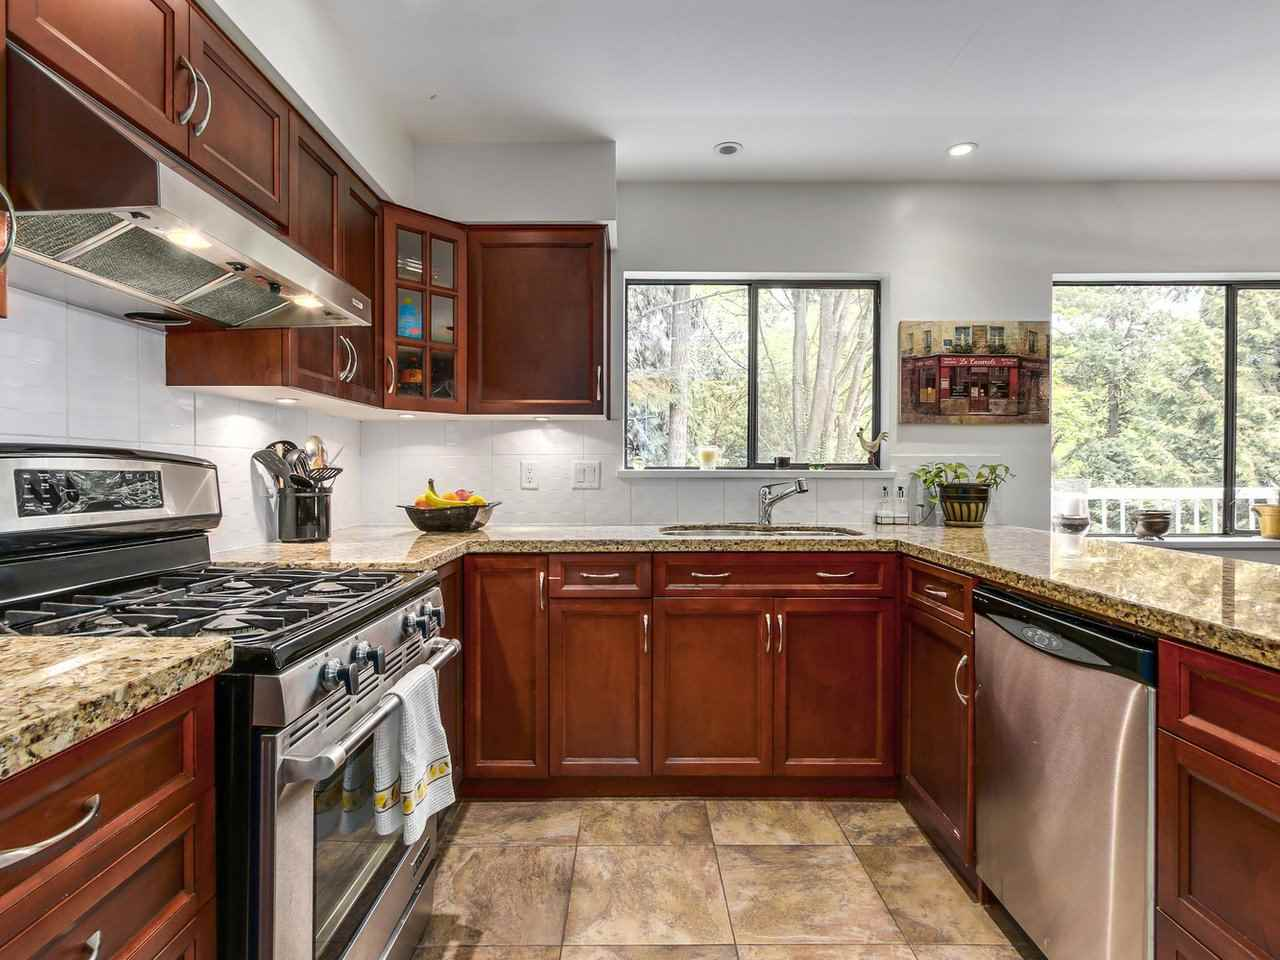 4678 CARSON STREET - South Slope House/Single Family for sale, 5 Bedrooms (R2162406) #7